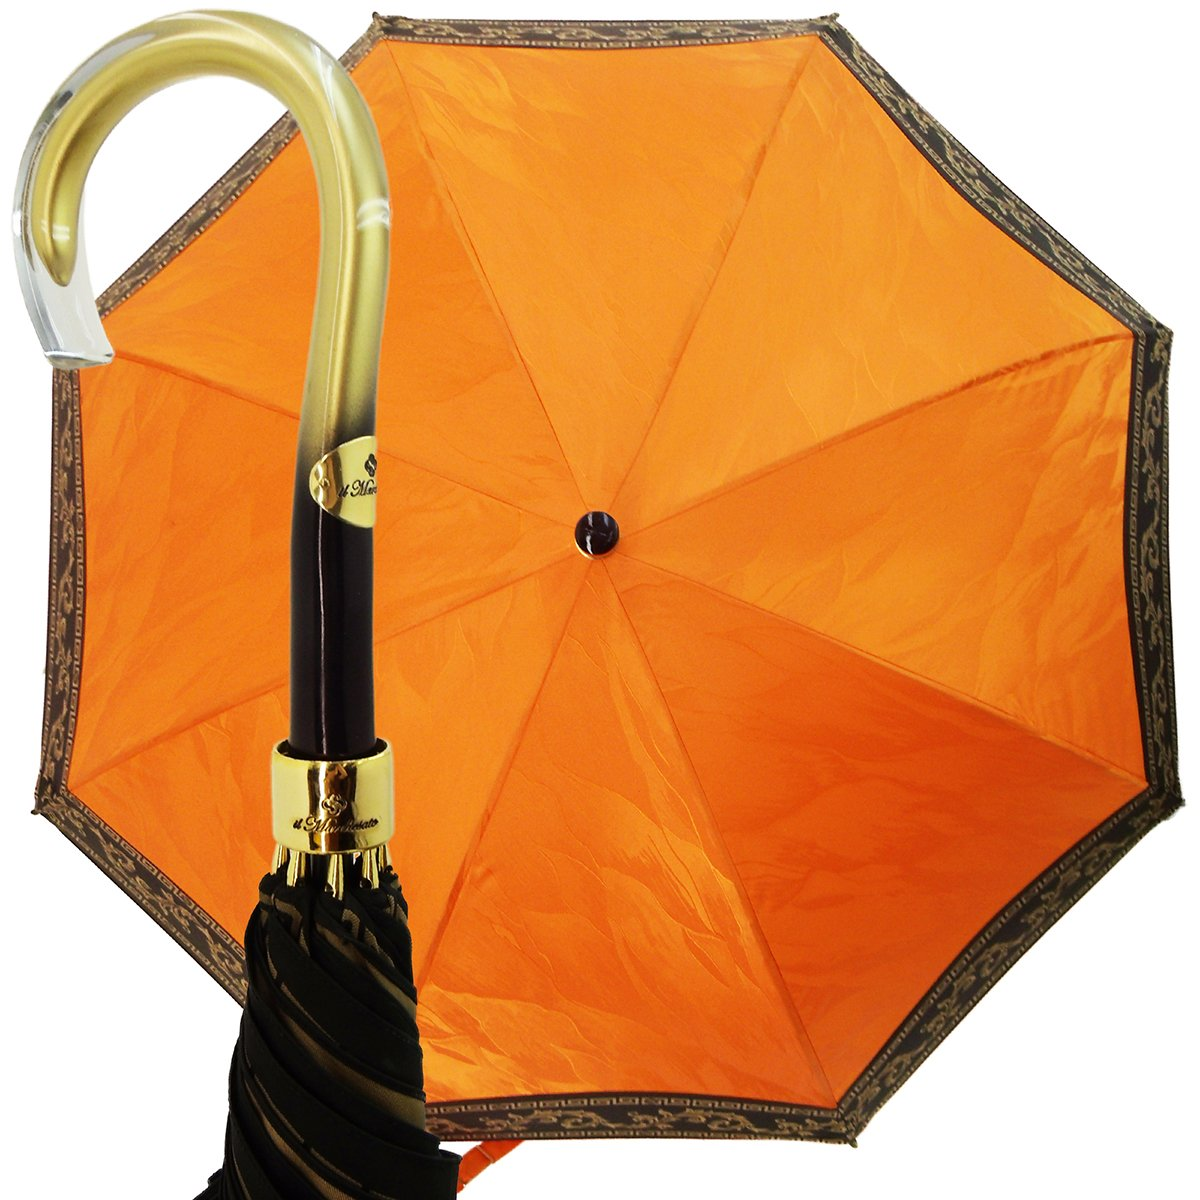 ORANGE LADIES UMBRELLA